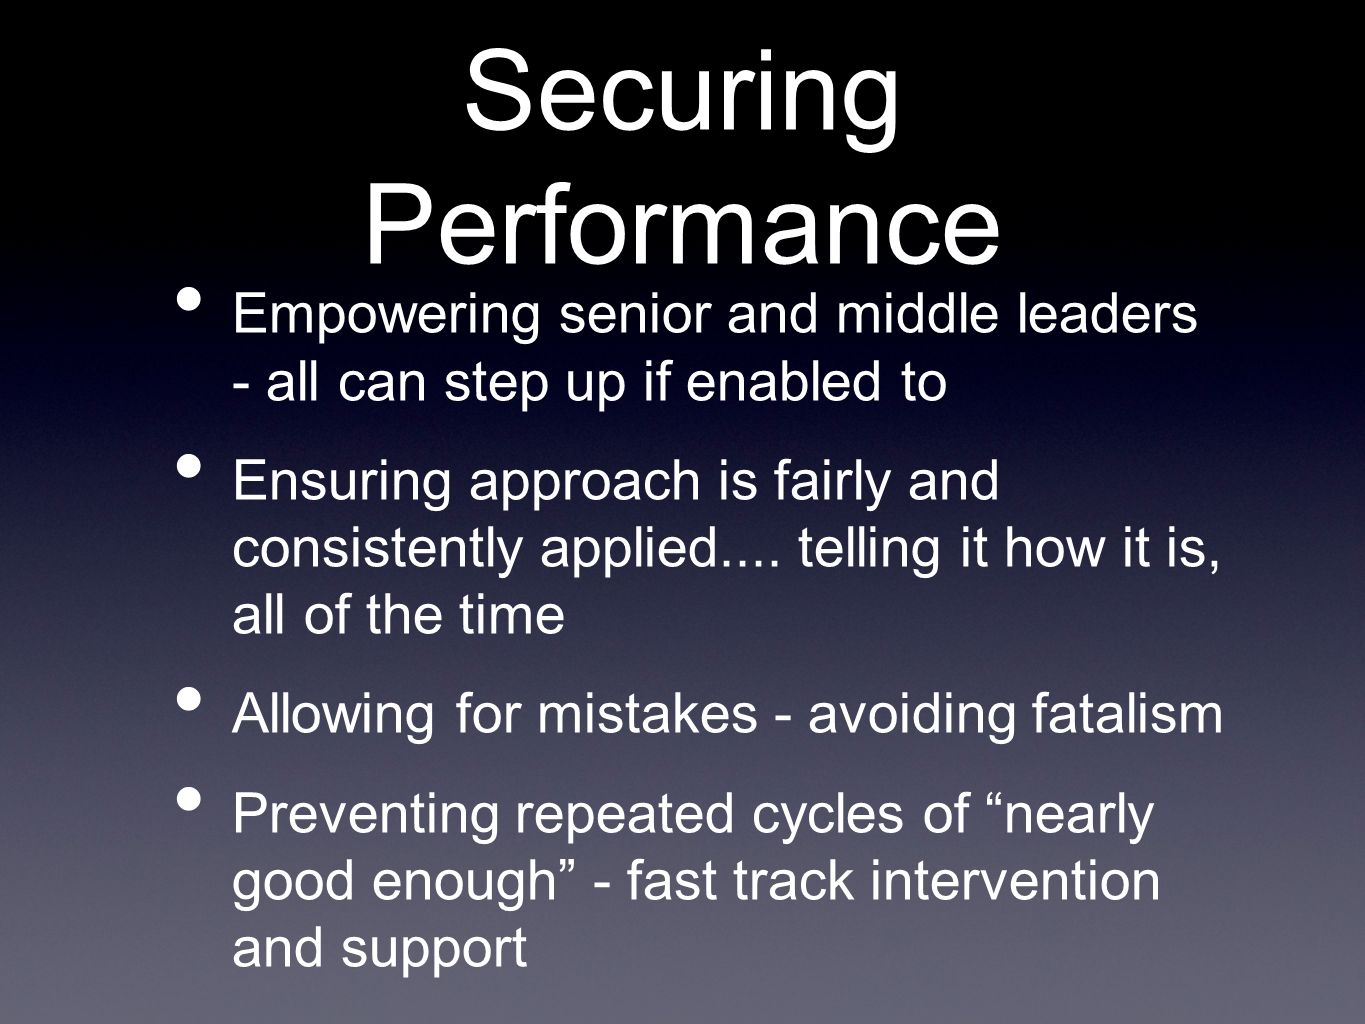 Securing Performance Empowering senior and middle leaders - all can step up if enabled to.